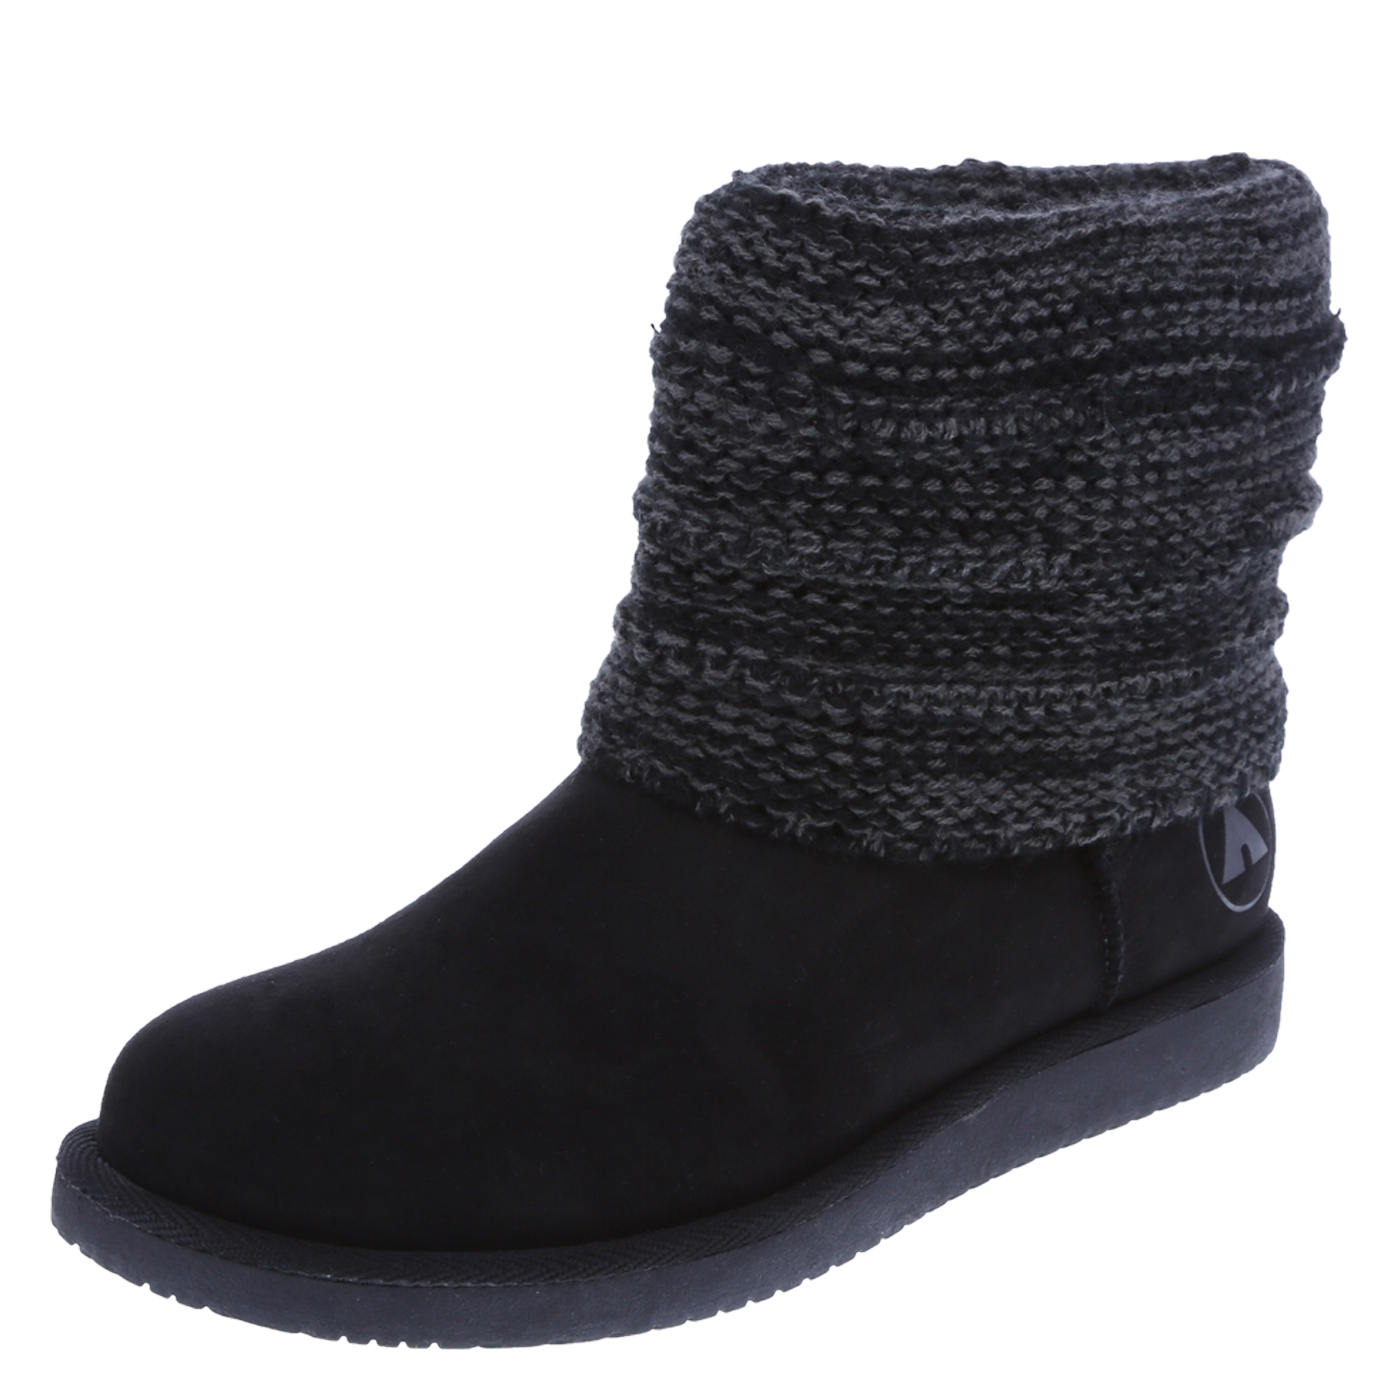 black boots womenu0027s naomi sweater cozy bootwomenu0027s naomi sweater cozy boot, black SIZEDBQ